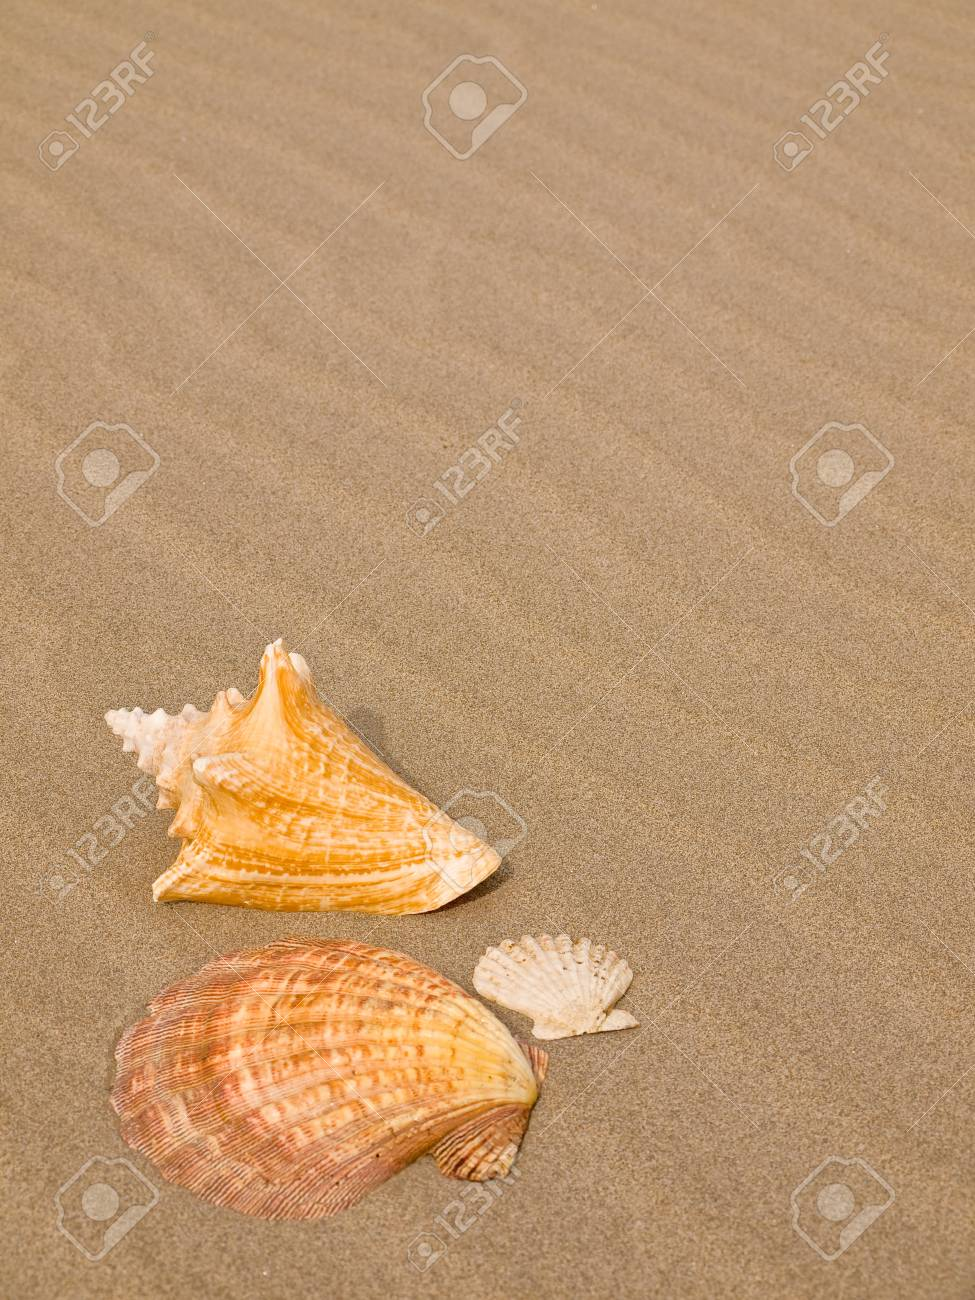 Scallop and Conch Shells on a Wind Swept Sandy Beach Stock Photo - 8556783